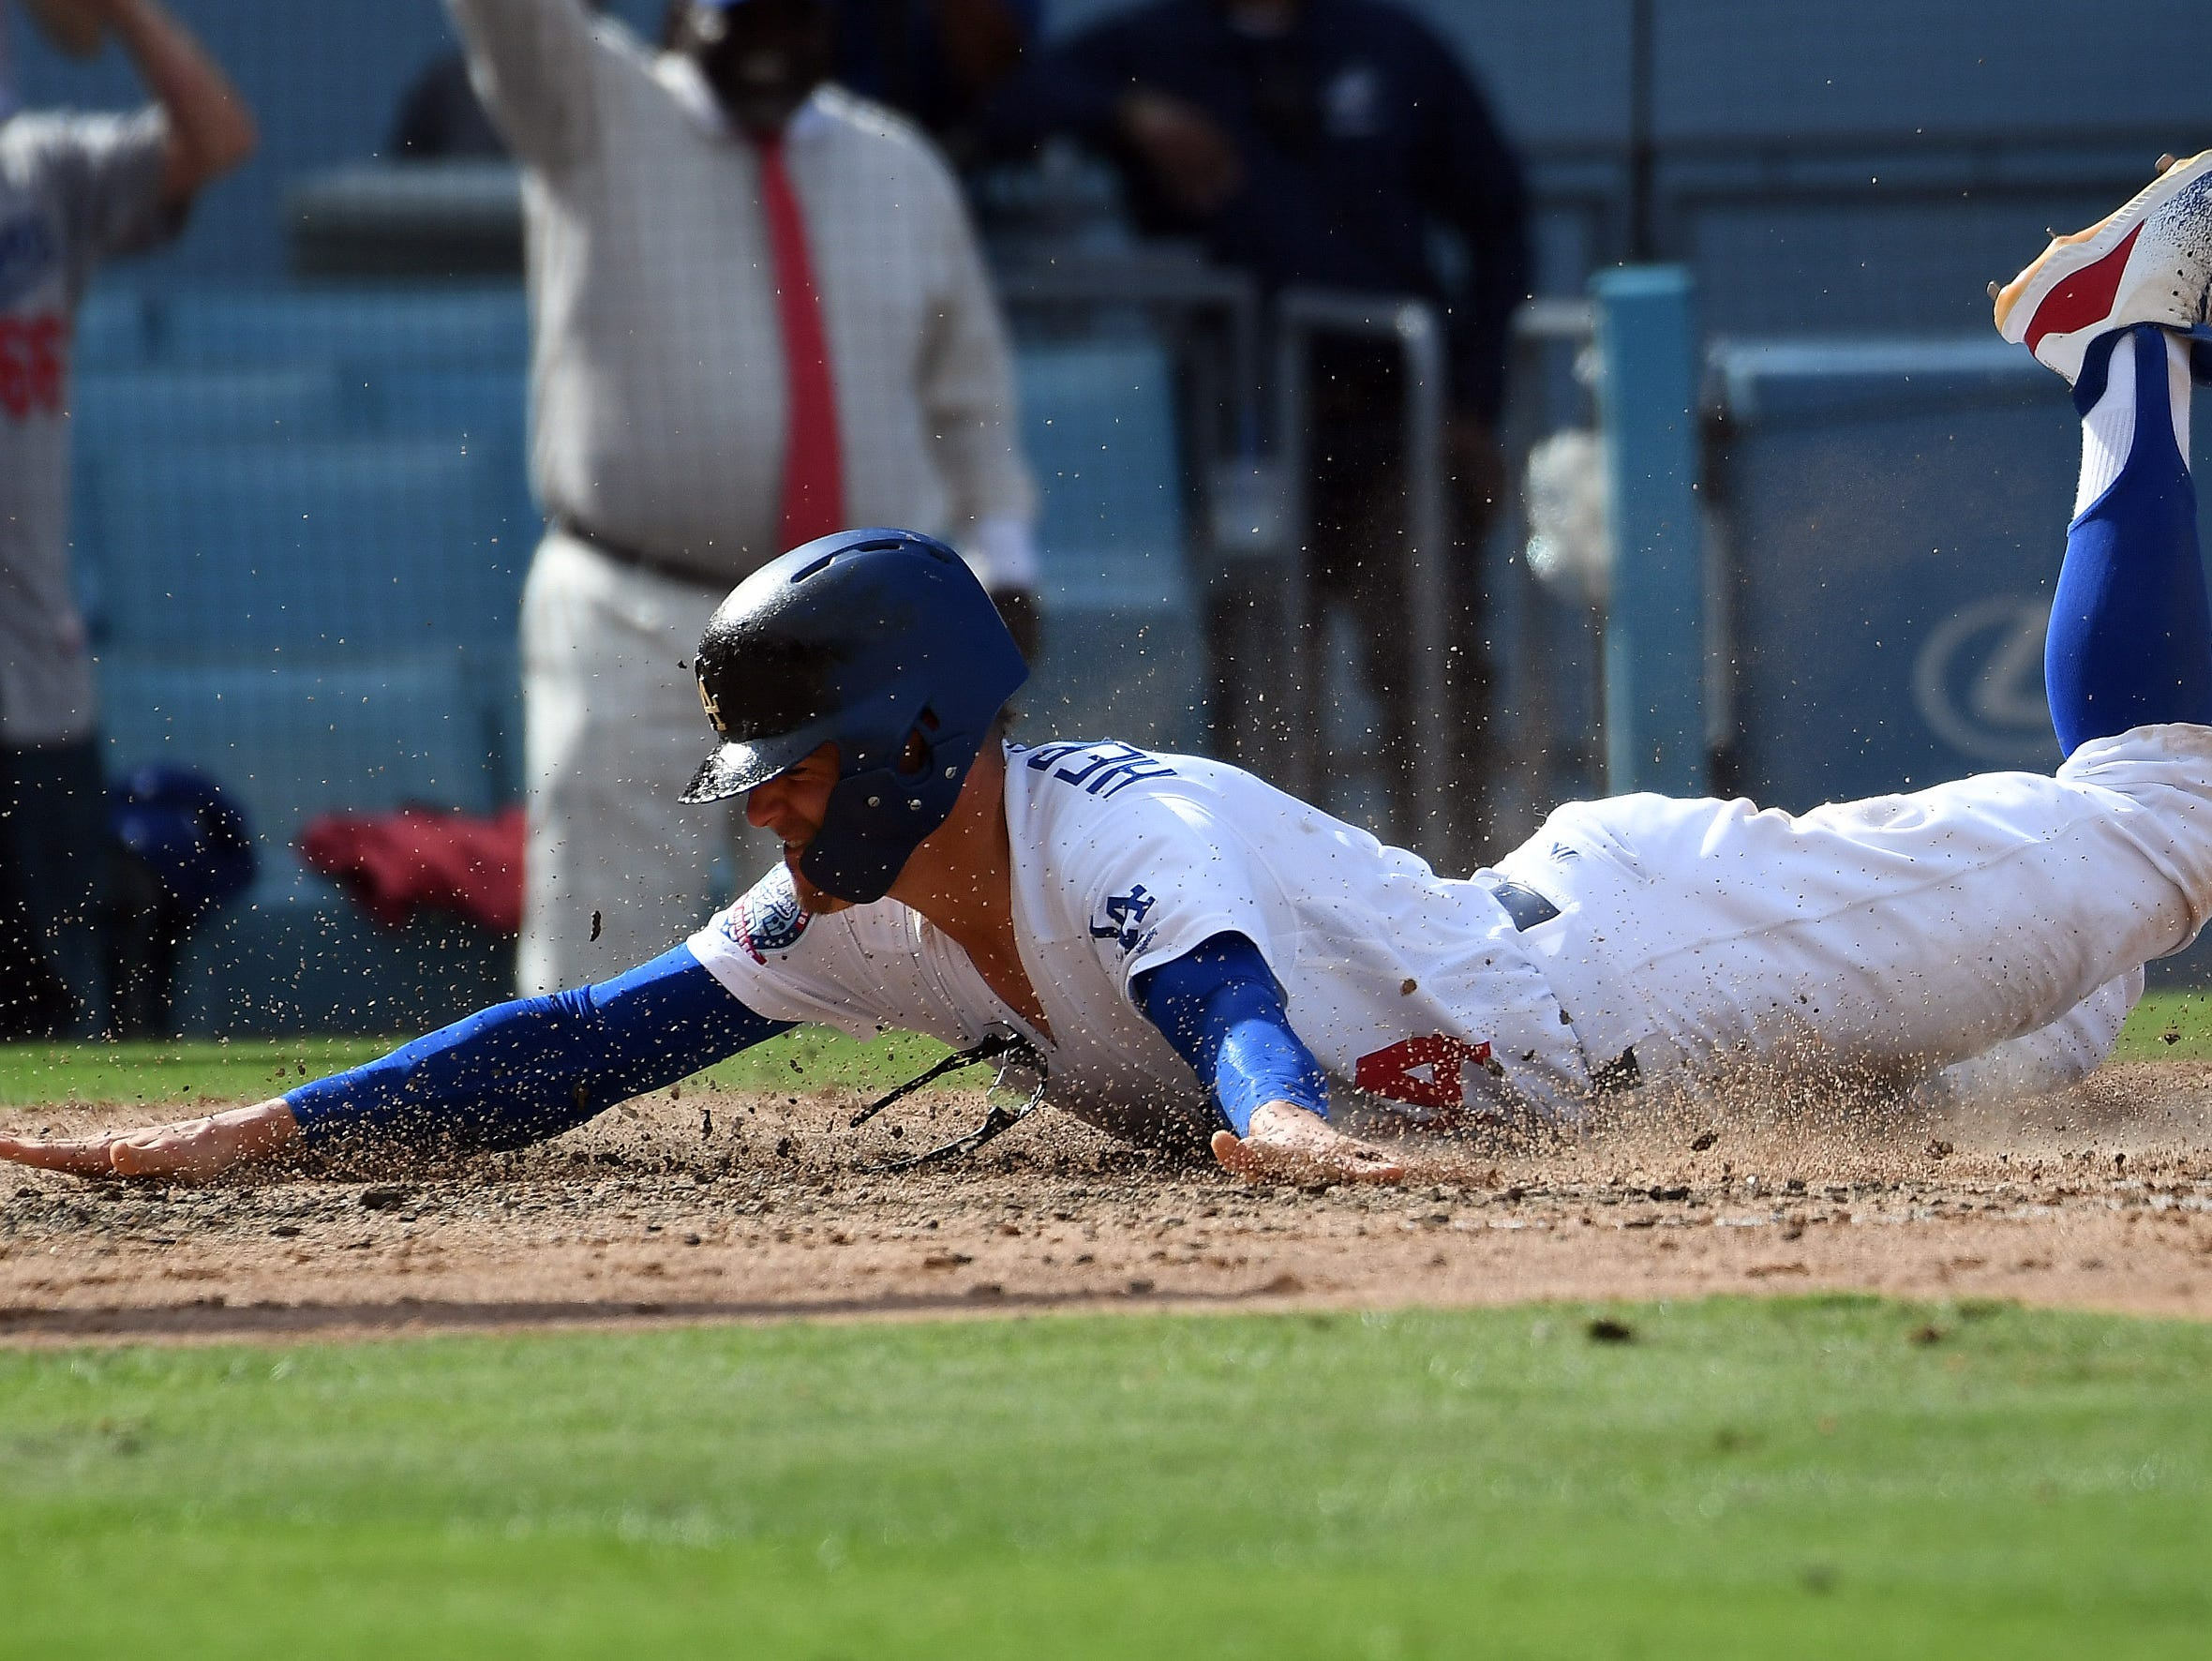 Los Angeles' Enrique Hernandez scores a run in the sixth inning.